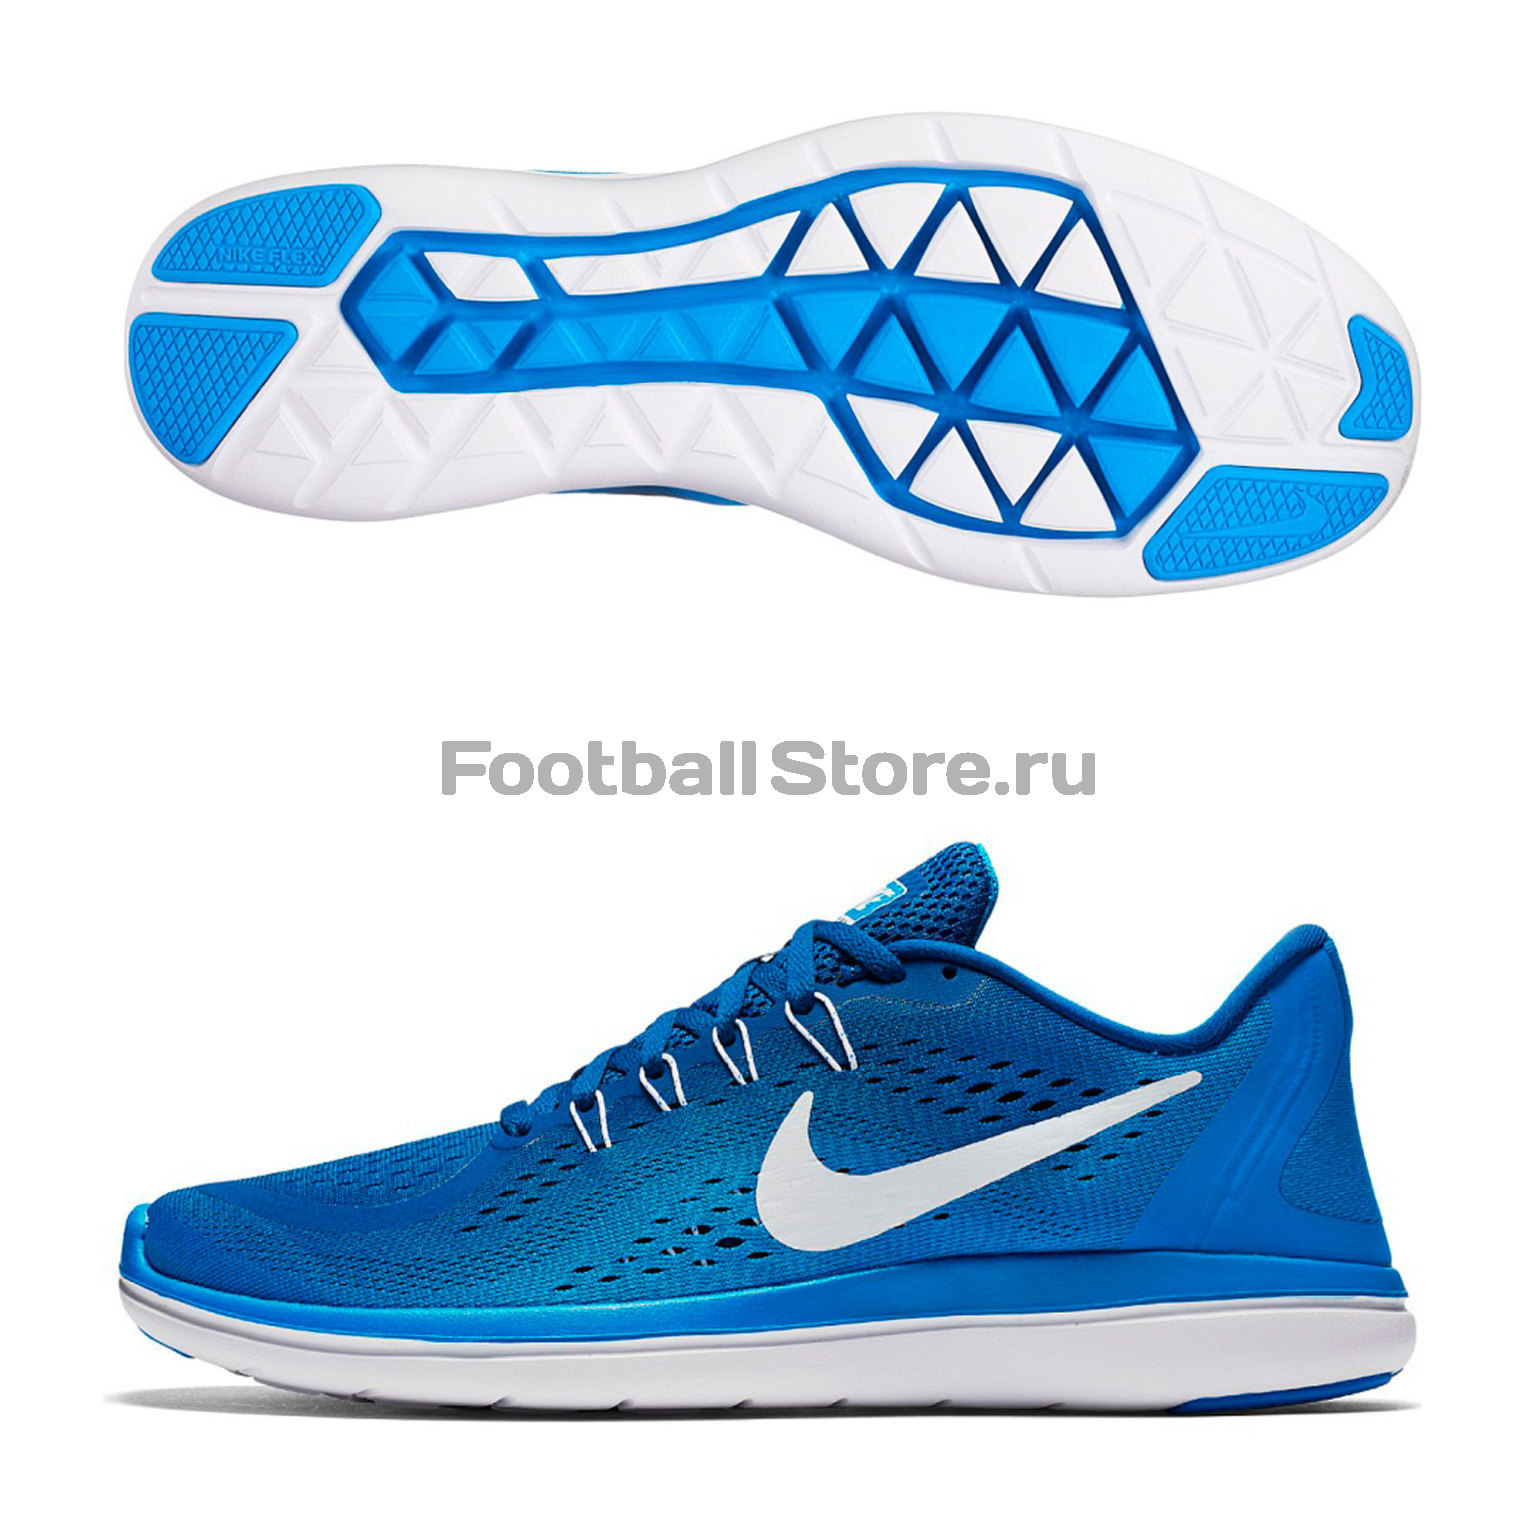 Кроссовки Nike Flex 2017 RN 898457-403 спортинвентарь nike чехол для iphone 6 на руку nike vapor flash arm band 2 0 n rn 50 078 os